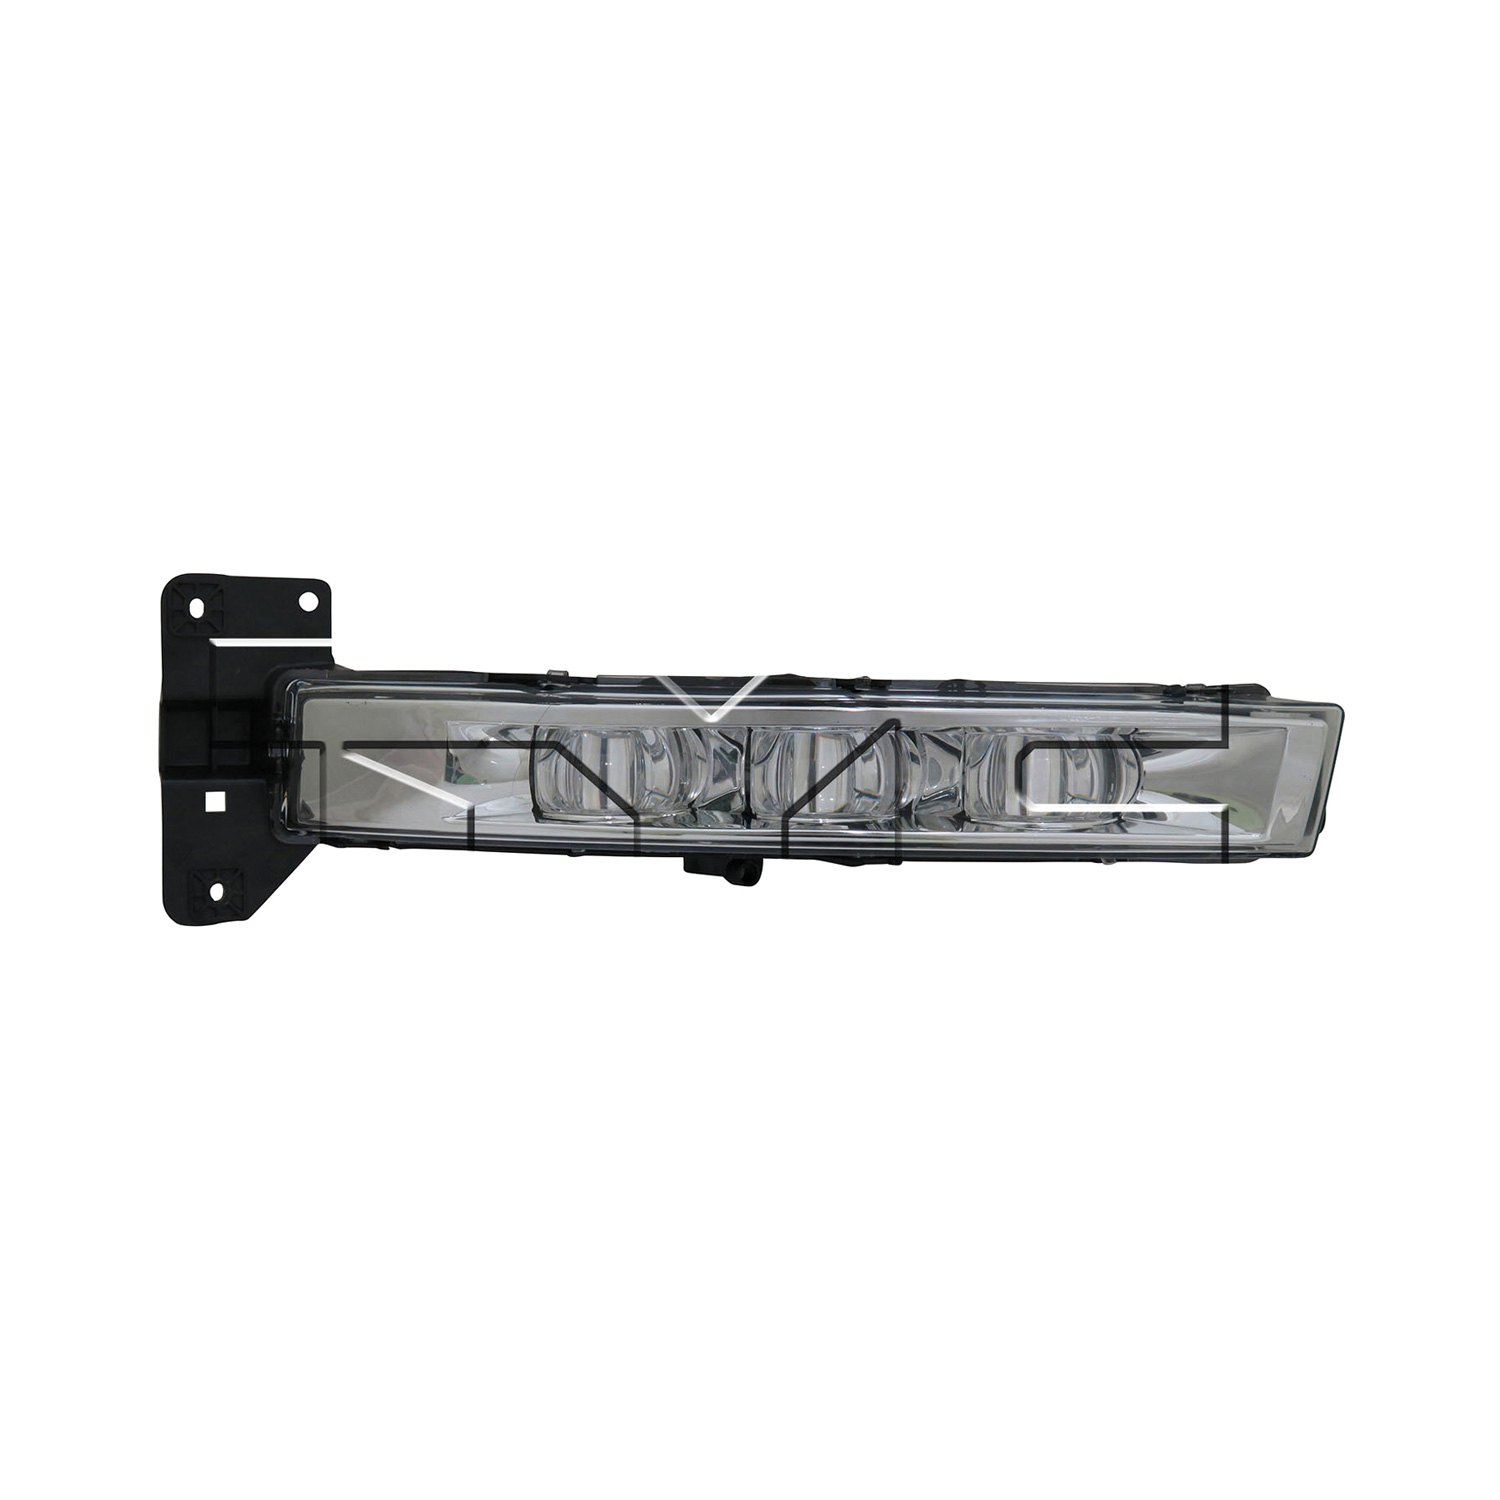 Dodge Charger 2016 Replacement Fog Light